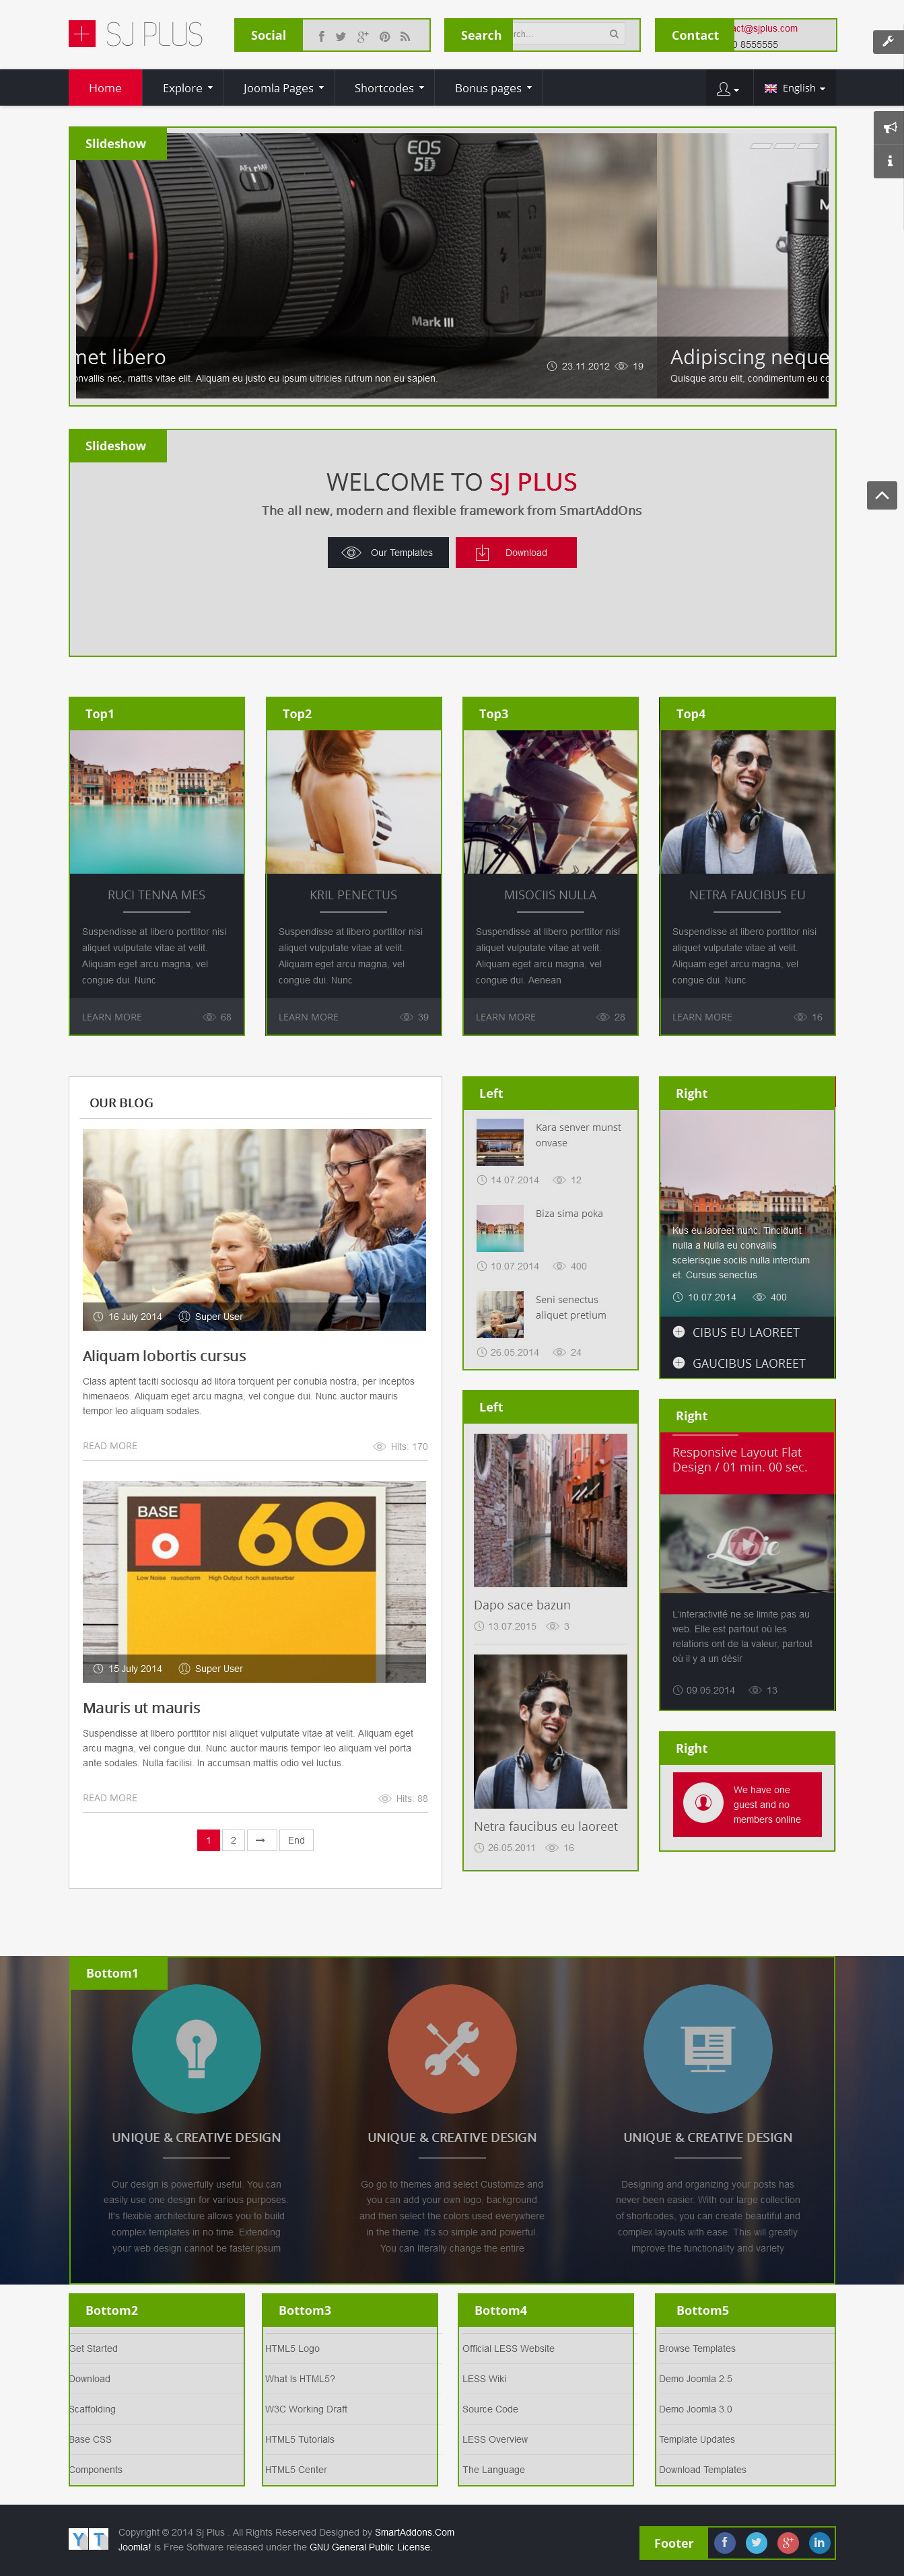 Free responsive joomla business template sj plus template attributes wajeb Gallery